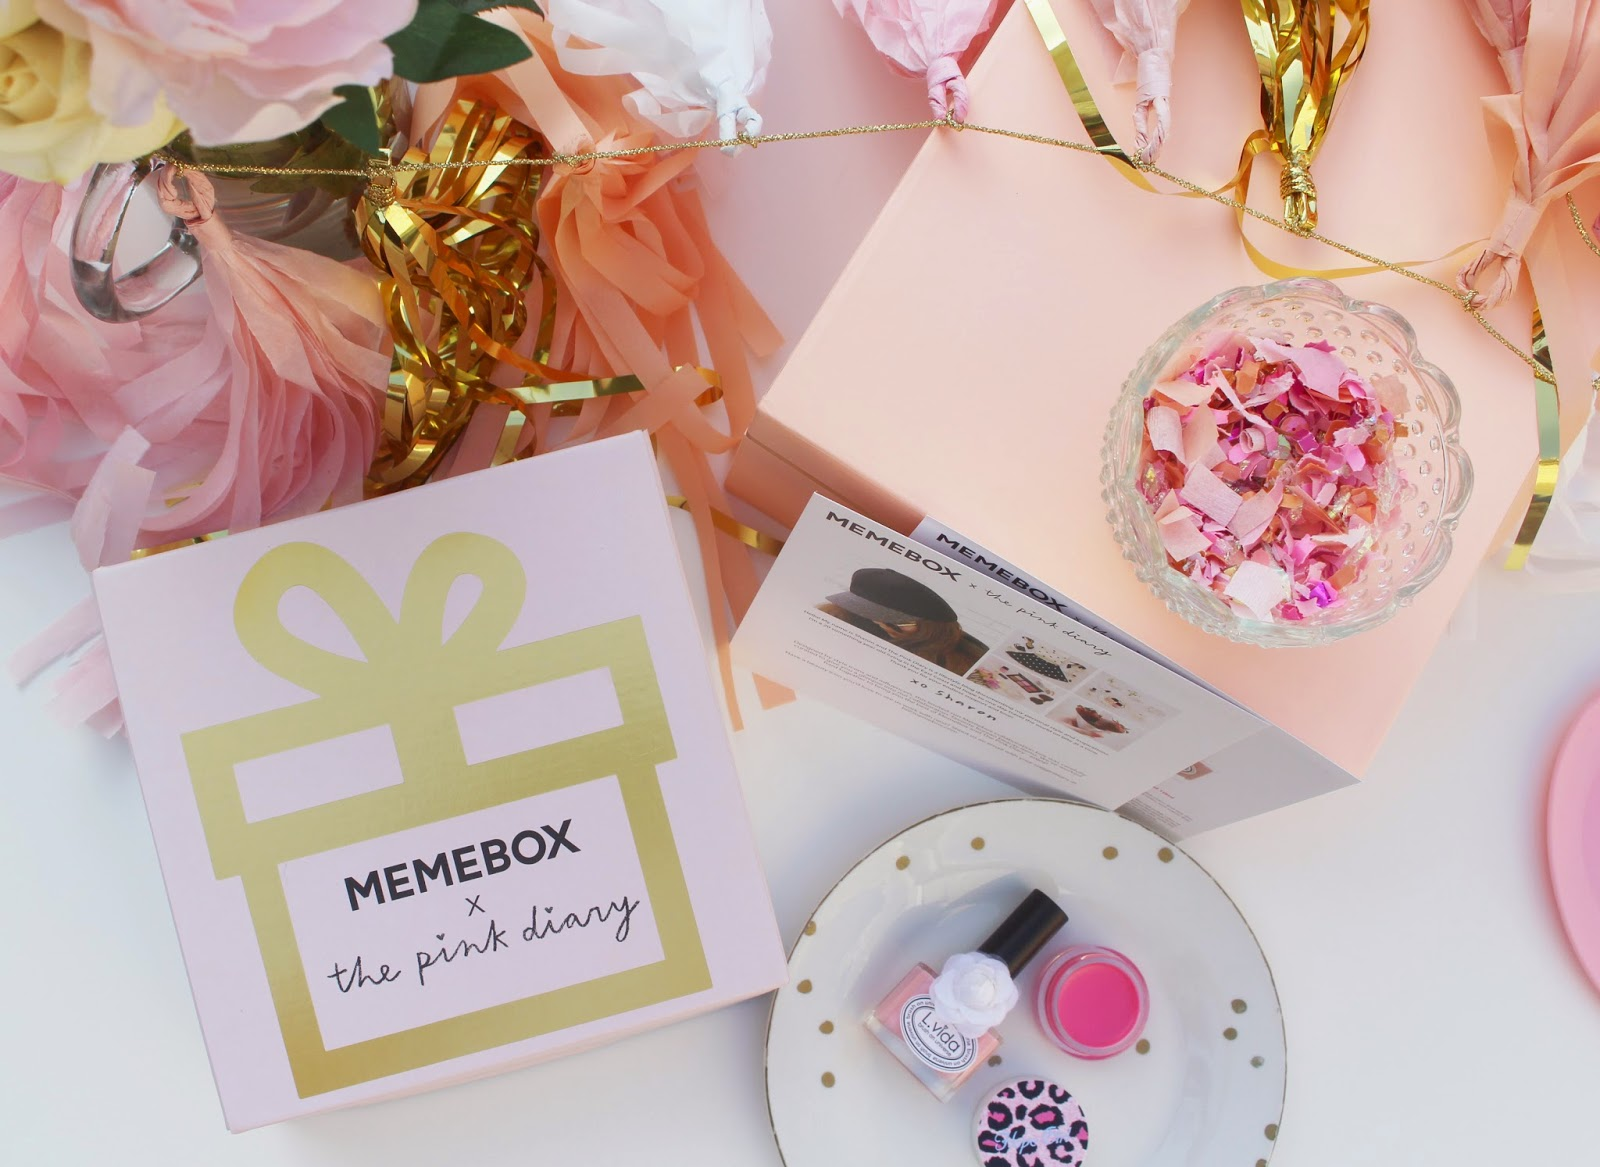 Memebox X The Pink Diary Money Can Buy Lipstick